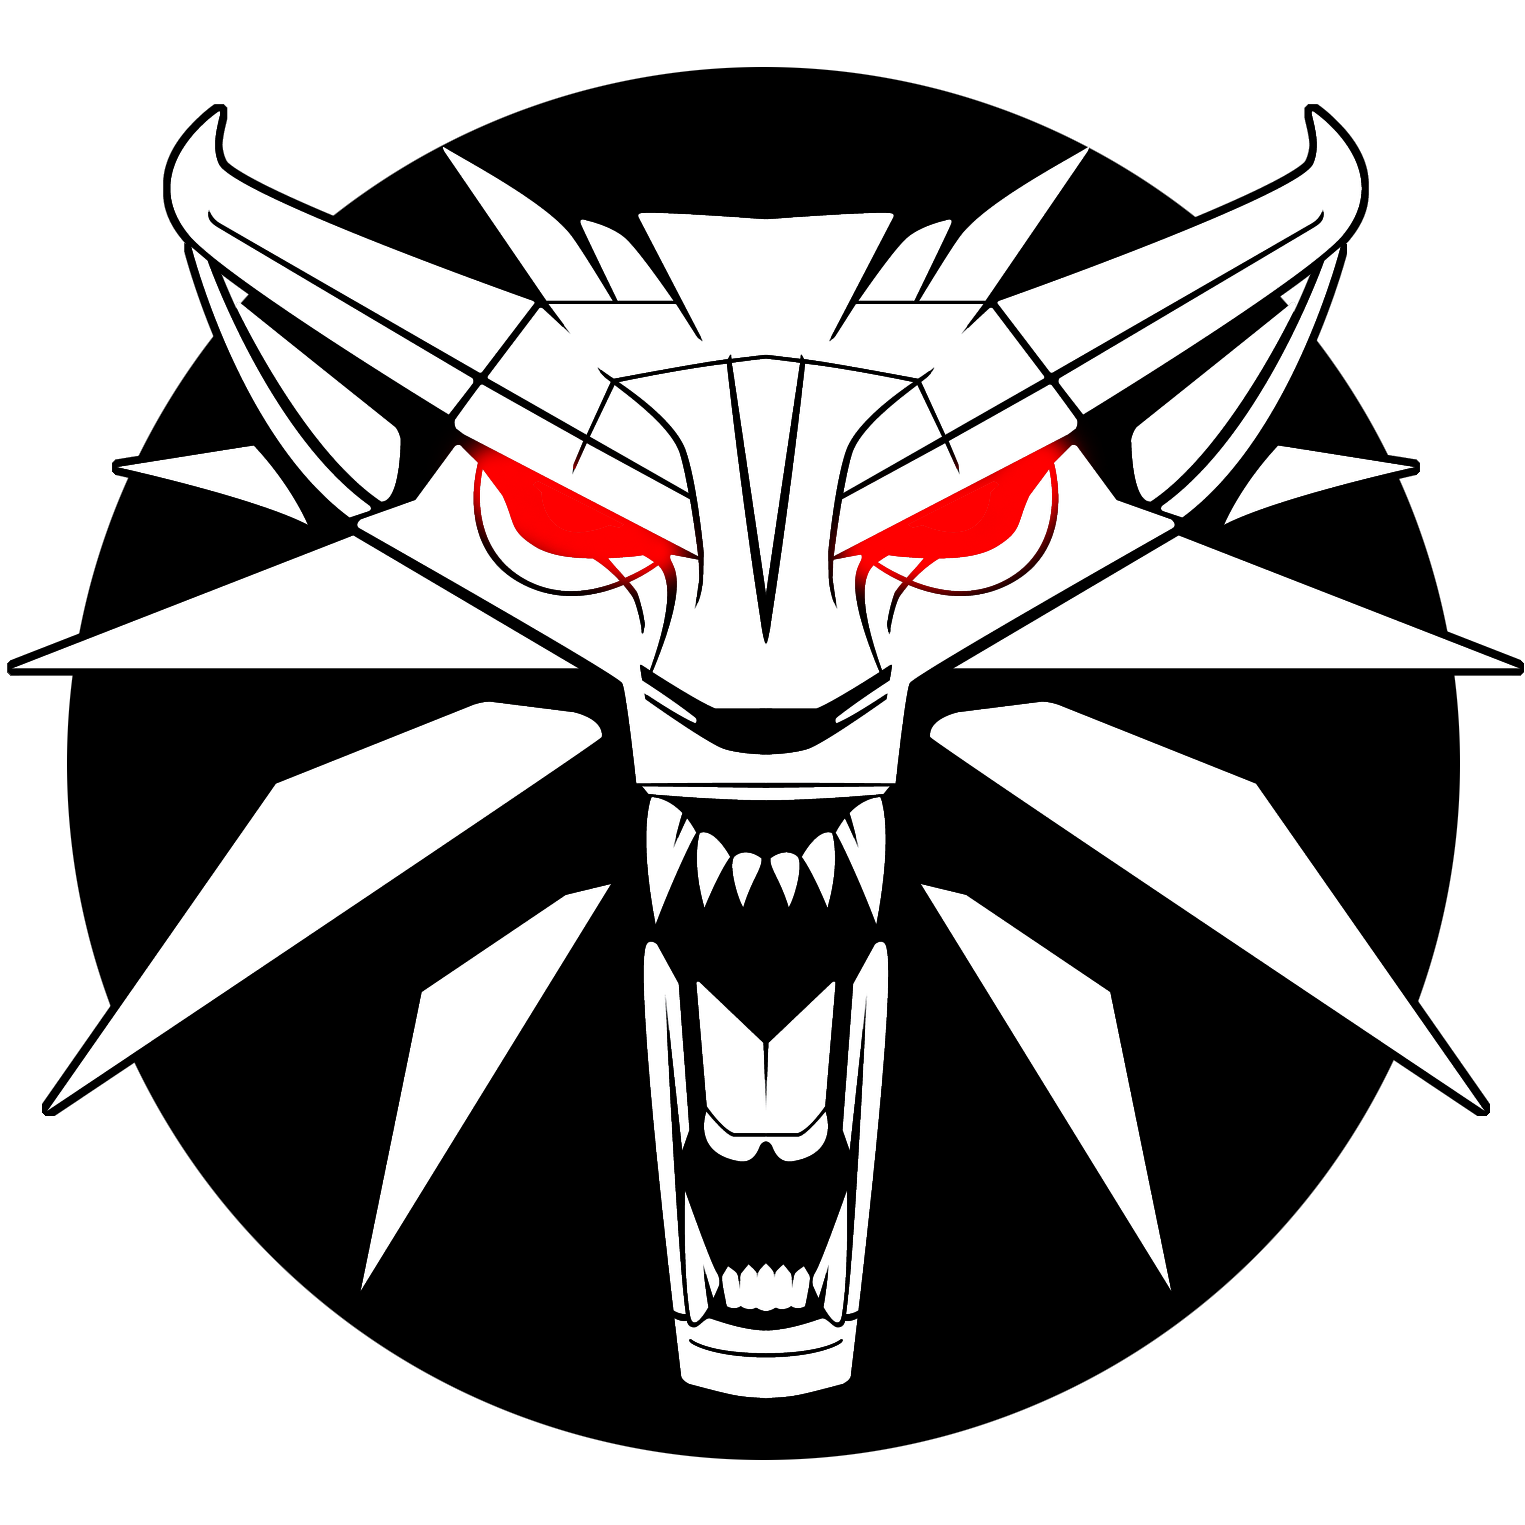 The Witcher Logo Png Image The Witcher Witcher Medallion Art Logo